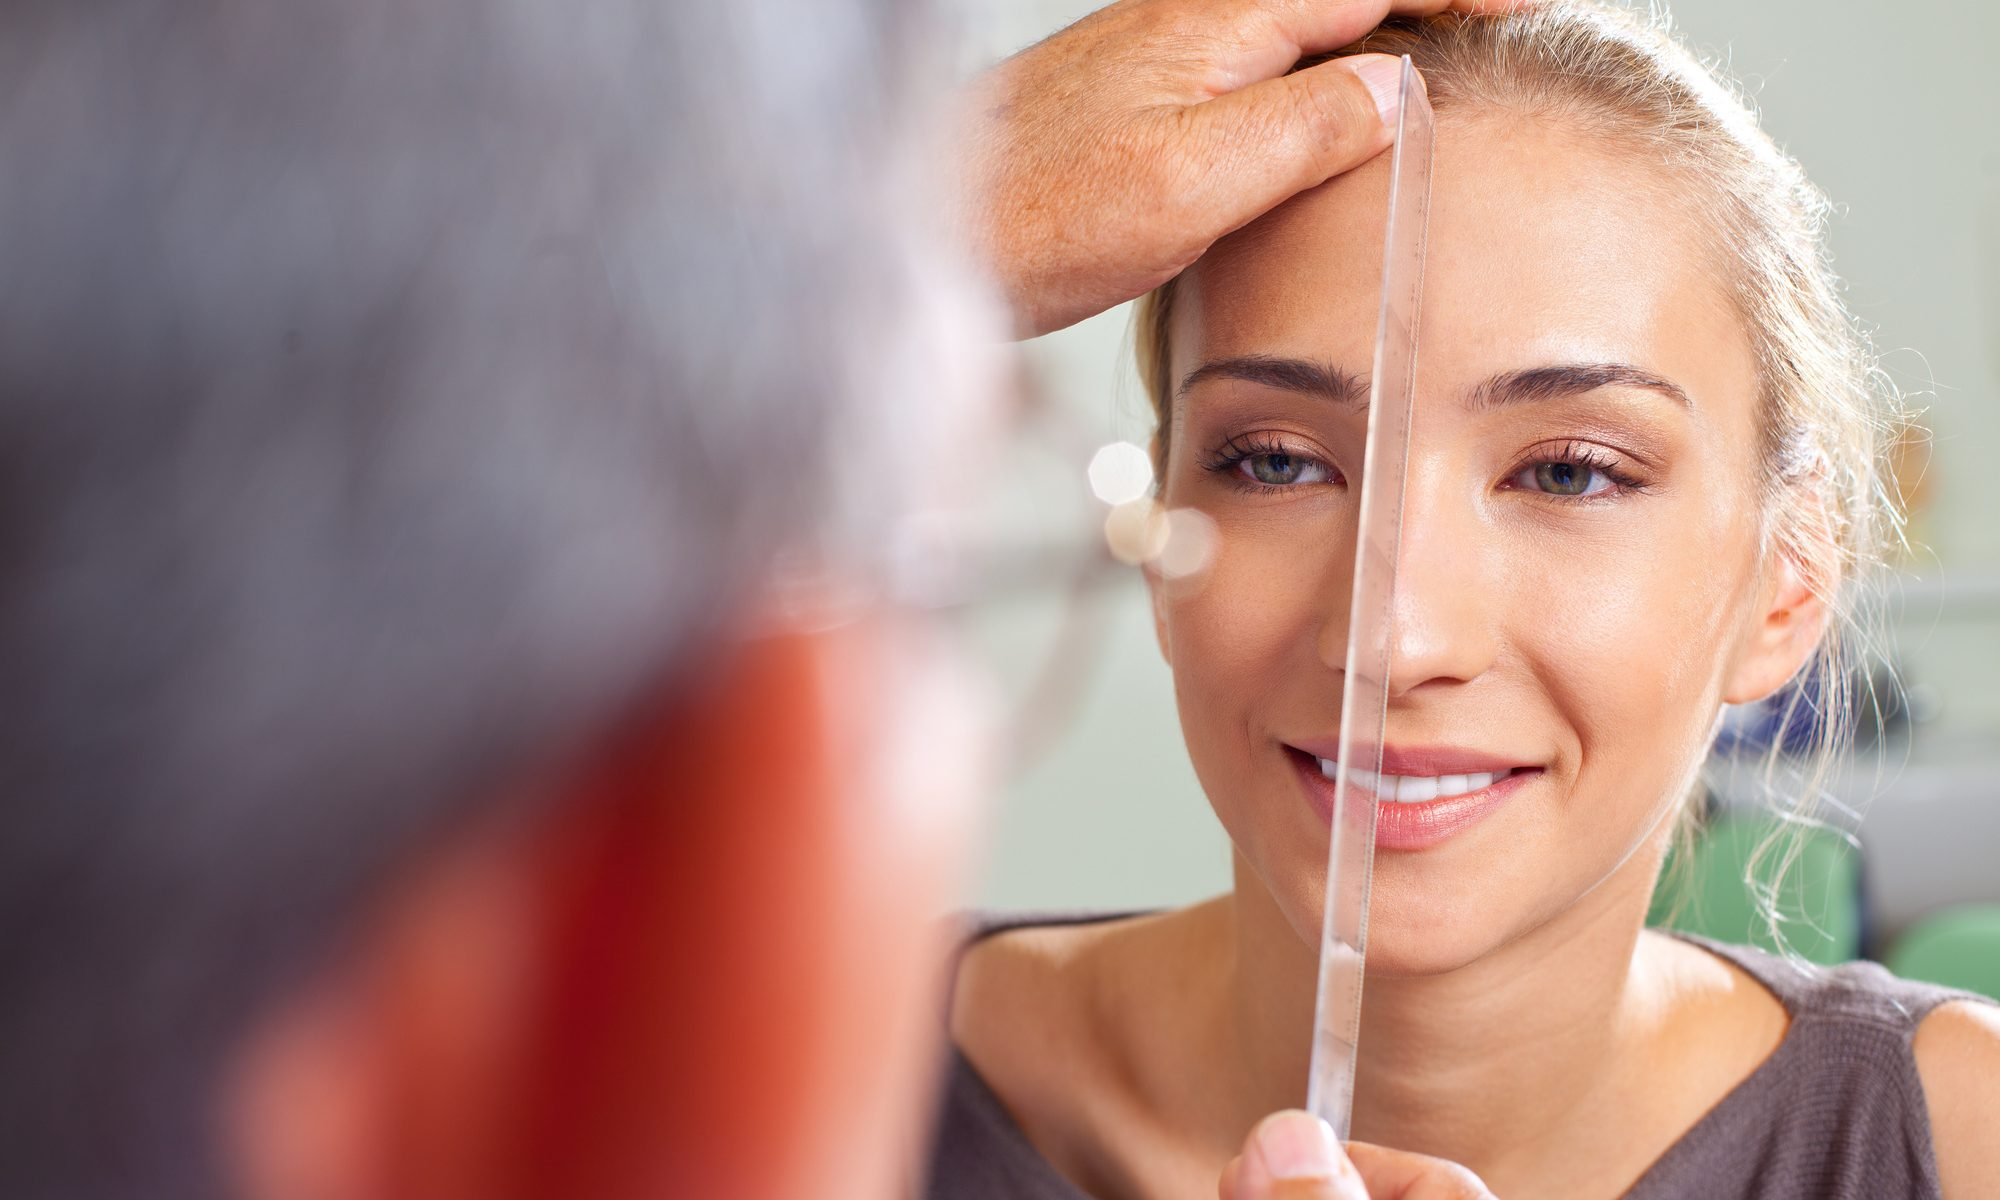 Life in Plastic: 4 Common Surgeries That Are a Plastic Surgeons Bread and Butter